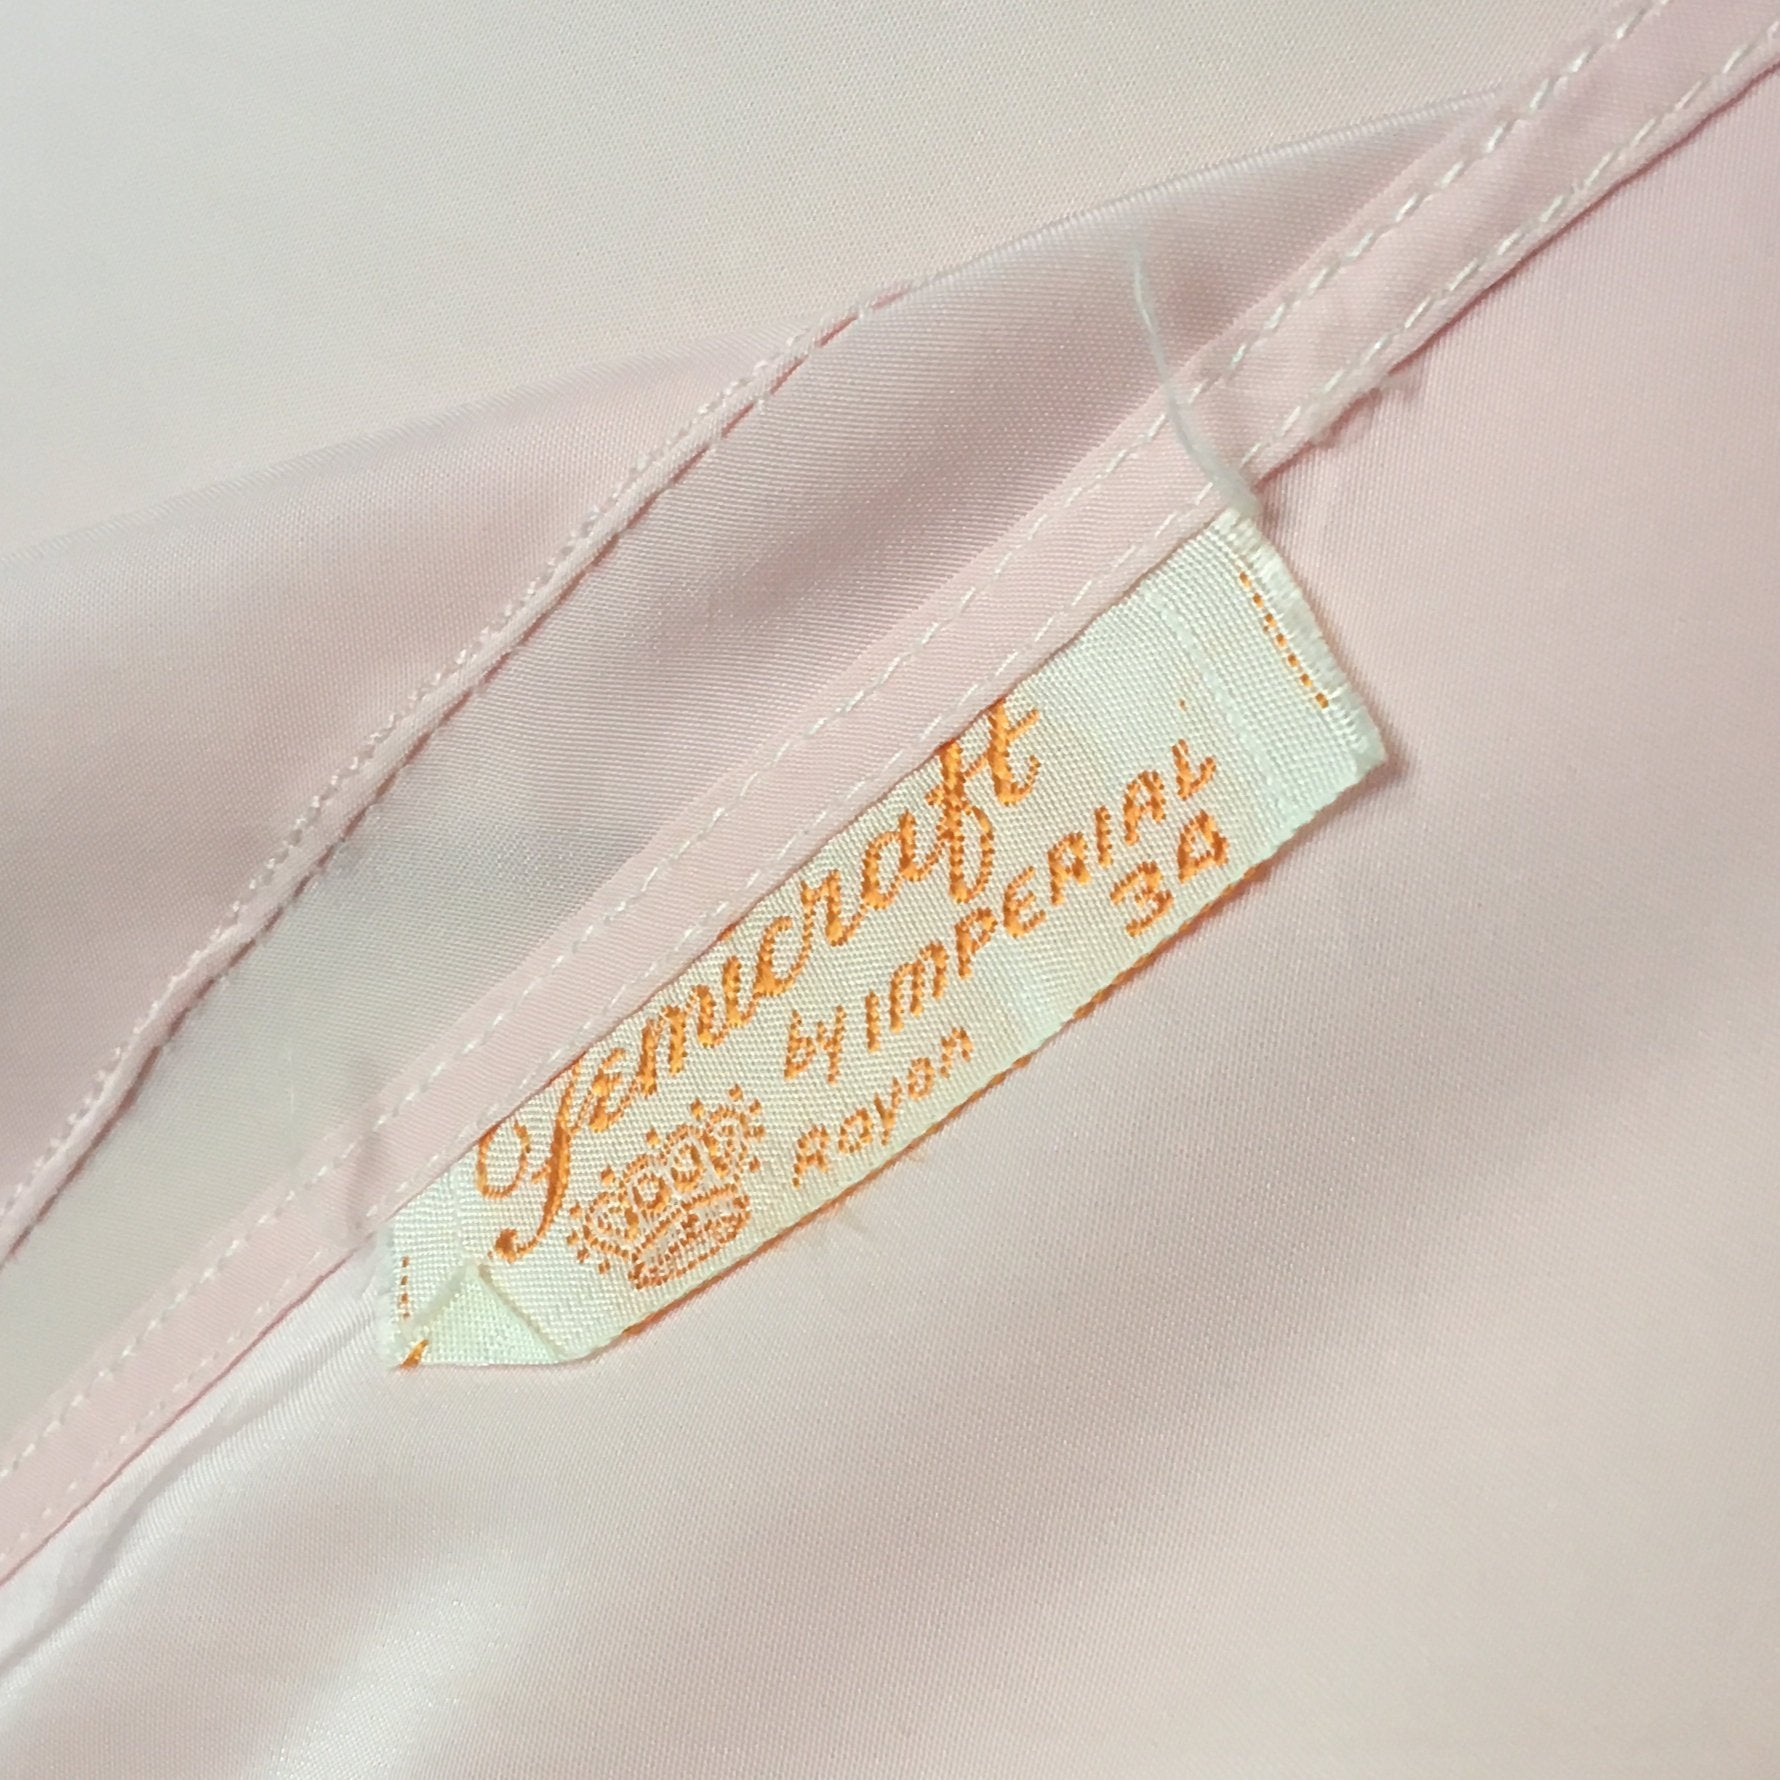 Vintage 1940's Slip | Powder Pink Rayon with Tulle Inserts & Embroidery | Femicraft | Size S - Daggers & Dames